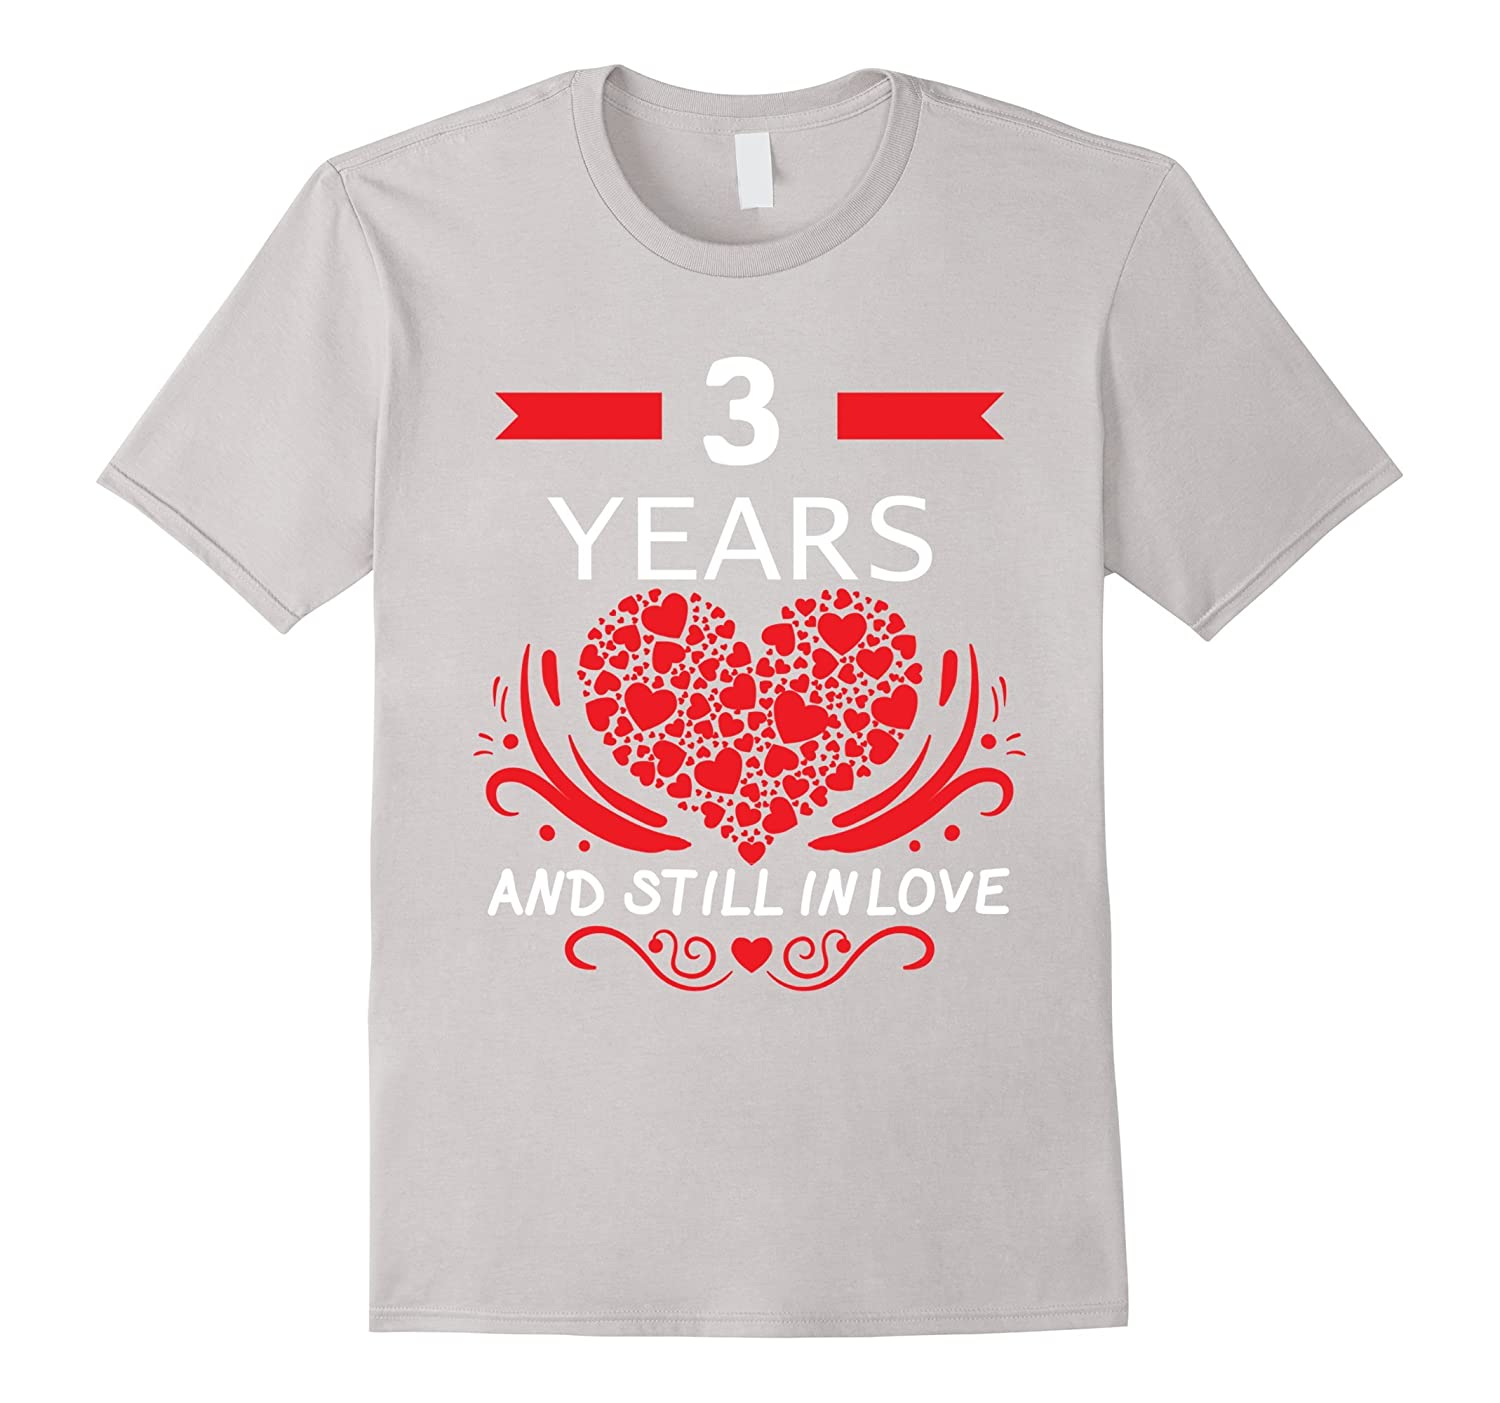 3rd wedding anniversary gifts 3 year shirt for him and her for 3 yr wedding anniversary gift for him